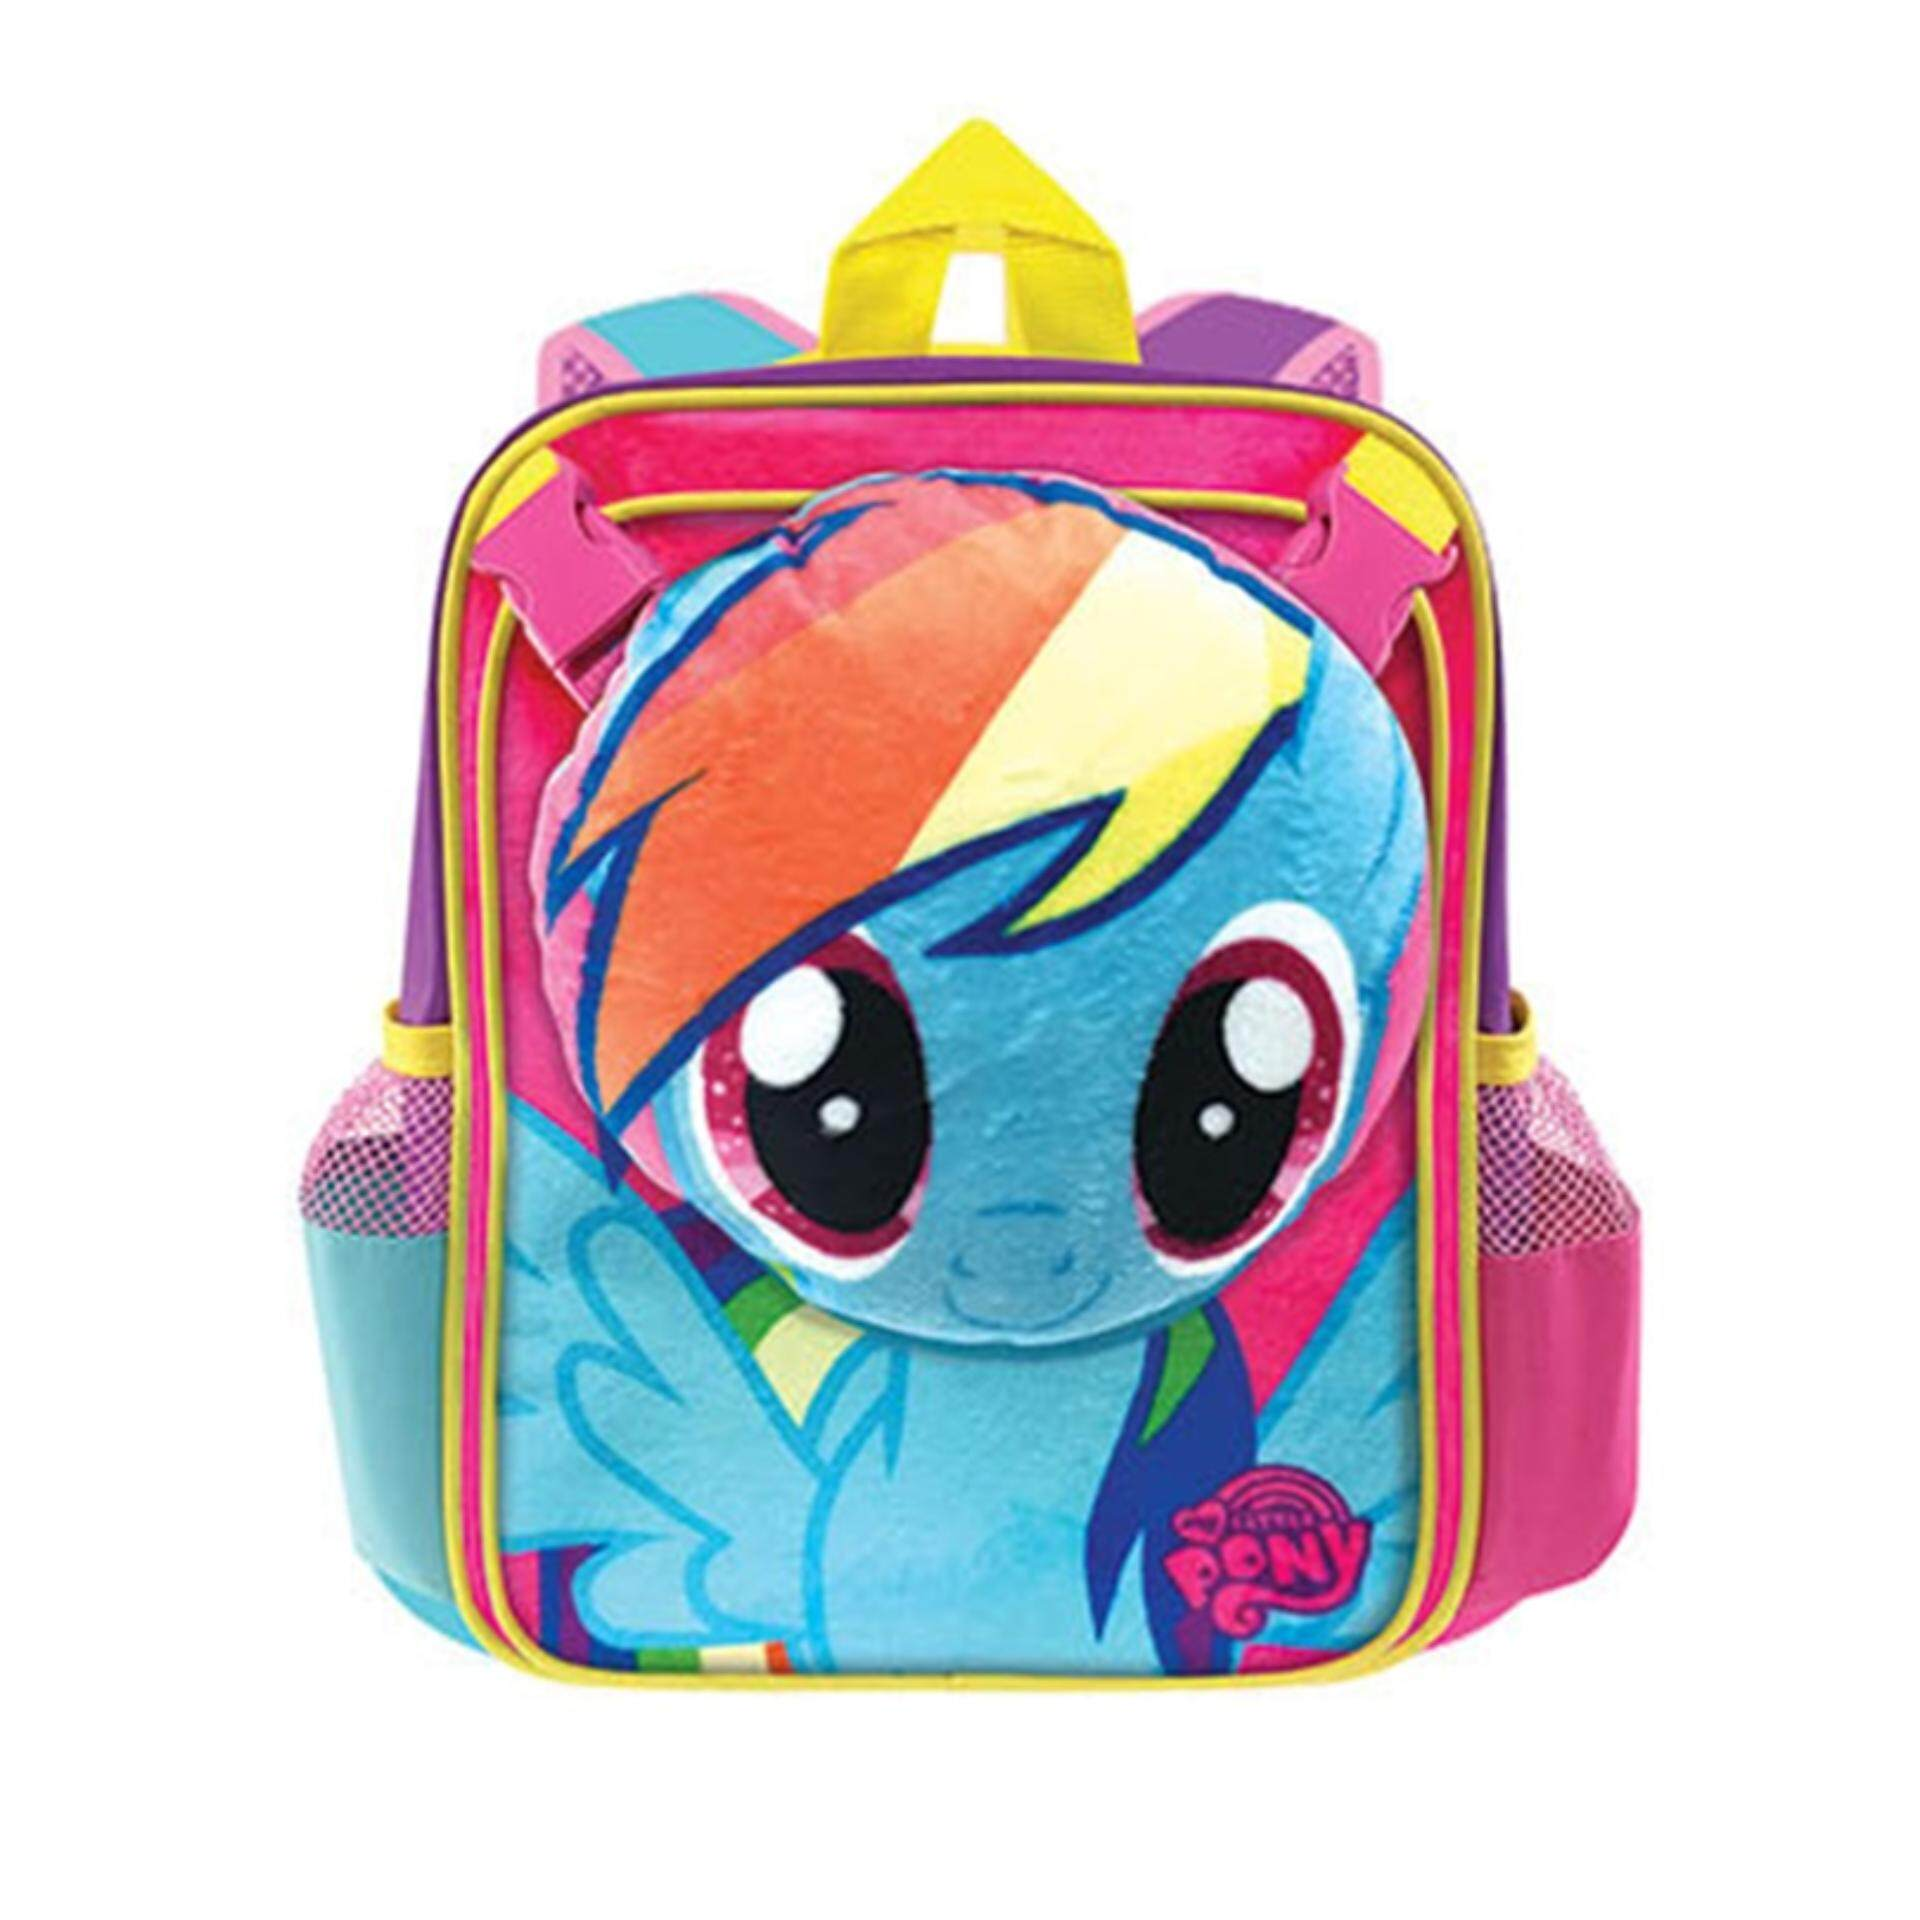 2b65b1dba790 My Little Pony Backpack School Bag 11 Inches - Rainbow Dash